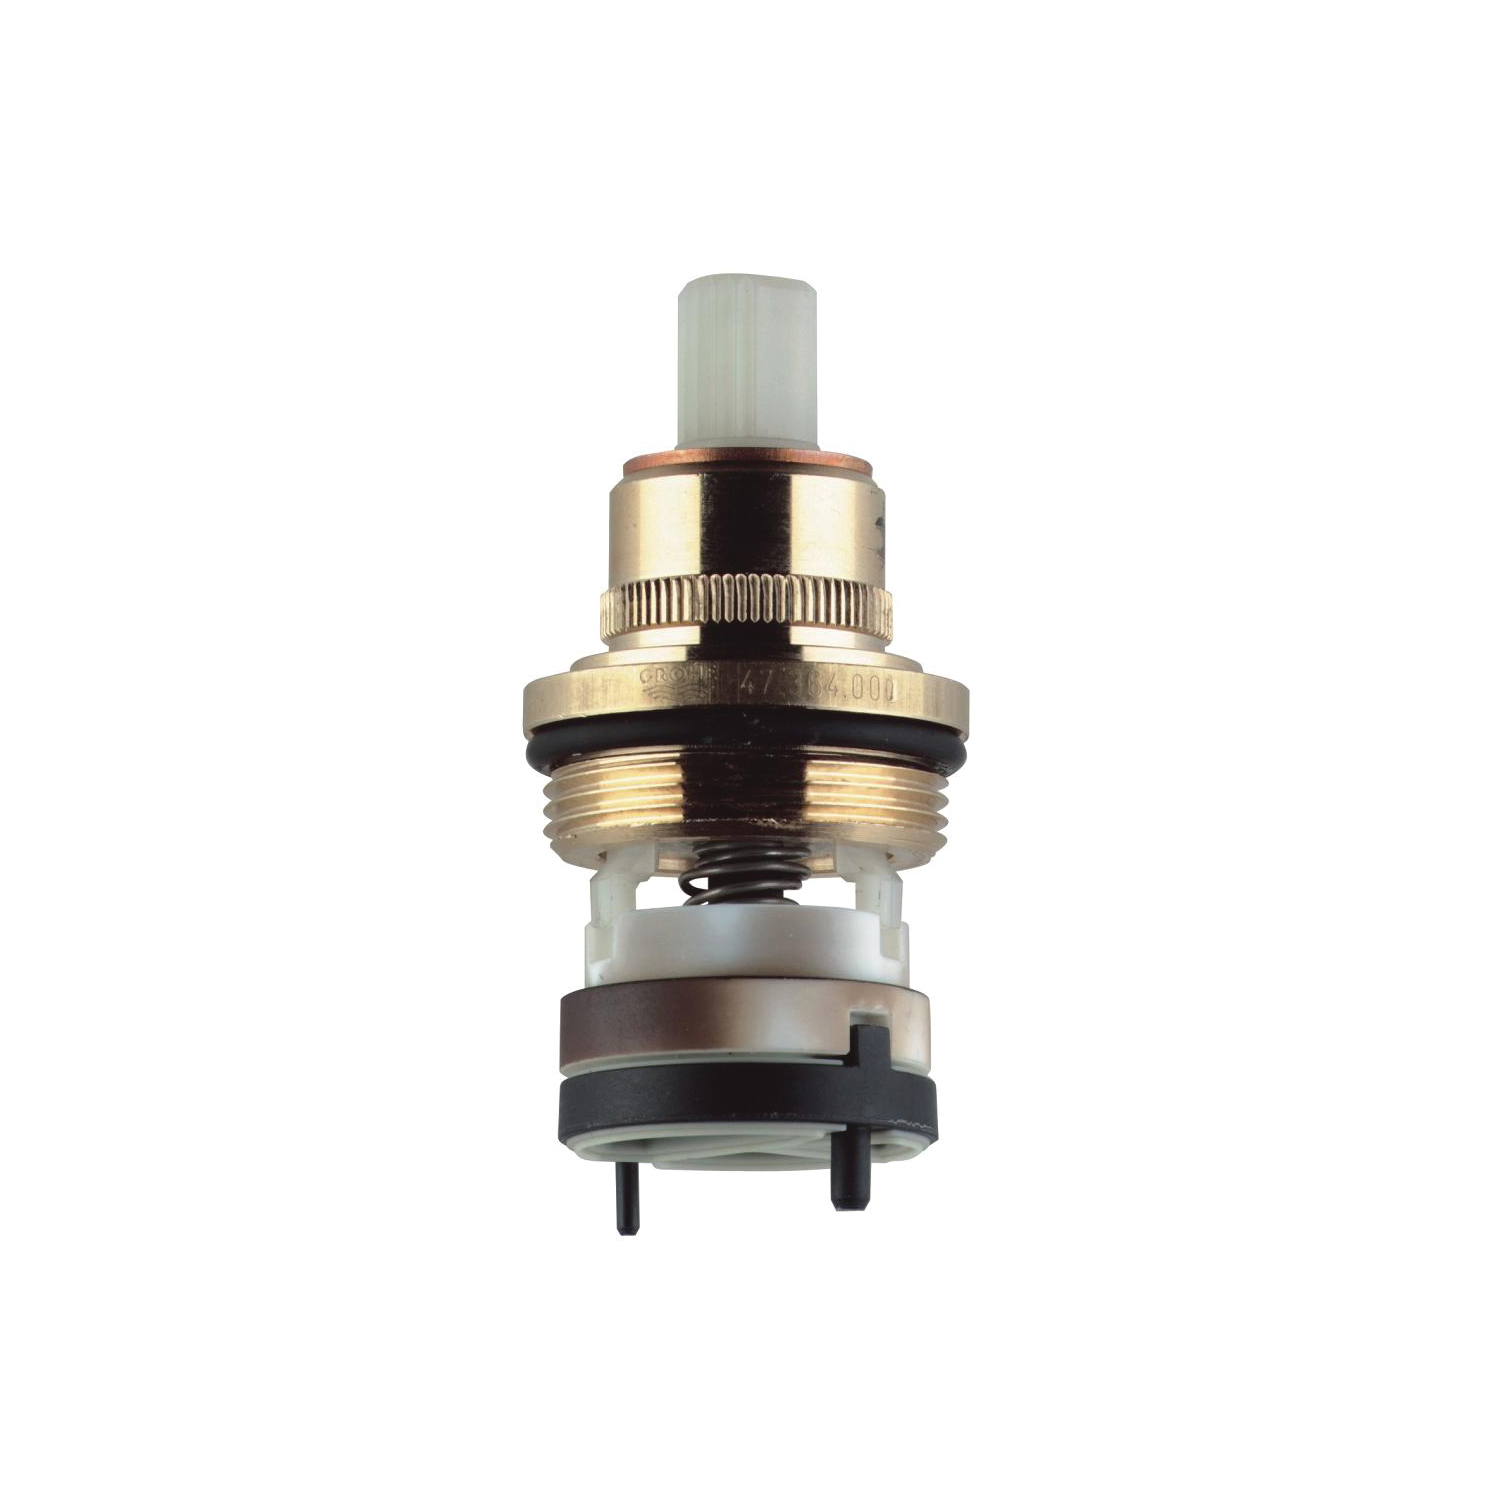 GROHE 47364000 Aquadimmer Cartridge, For Use With Thermostatic Valve, Import